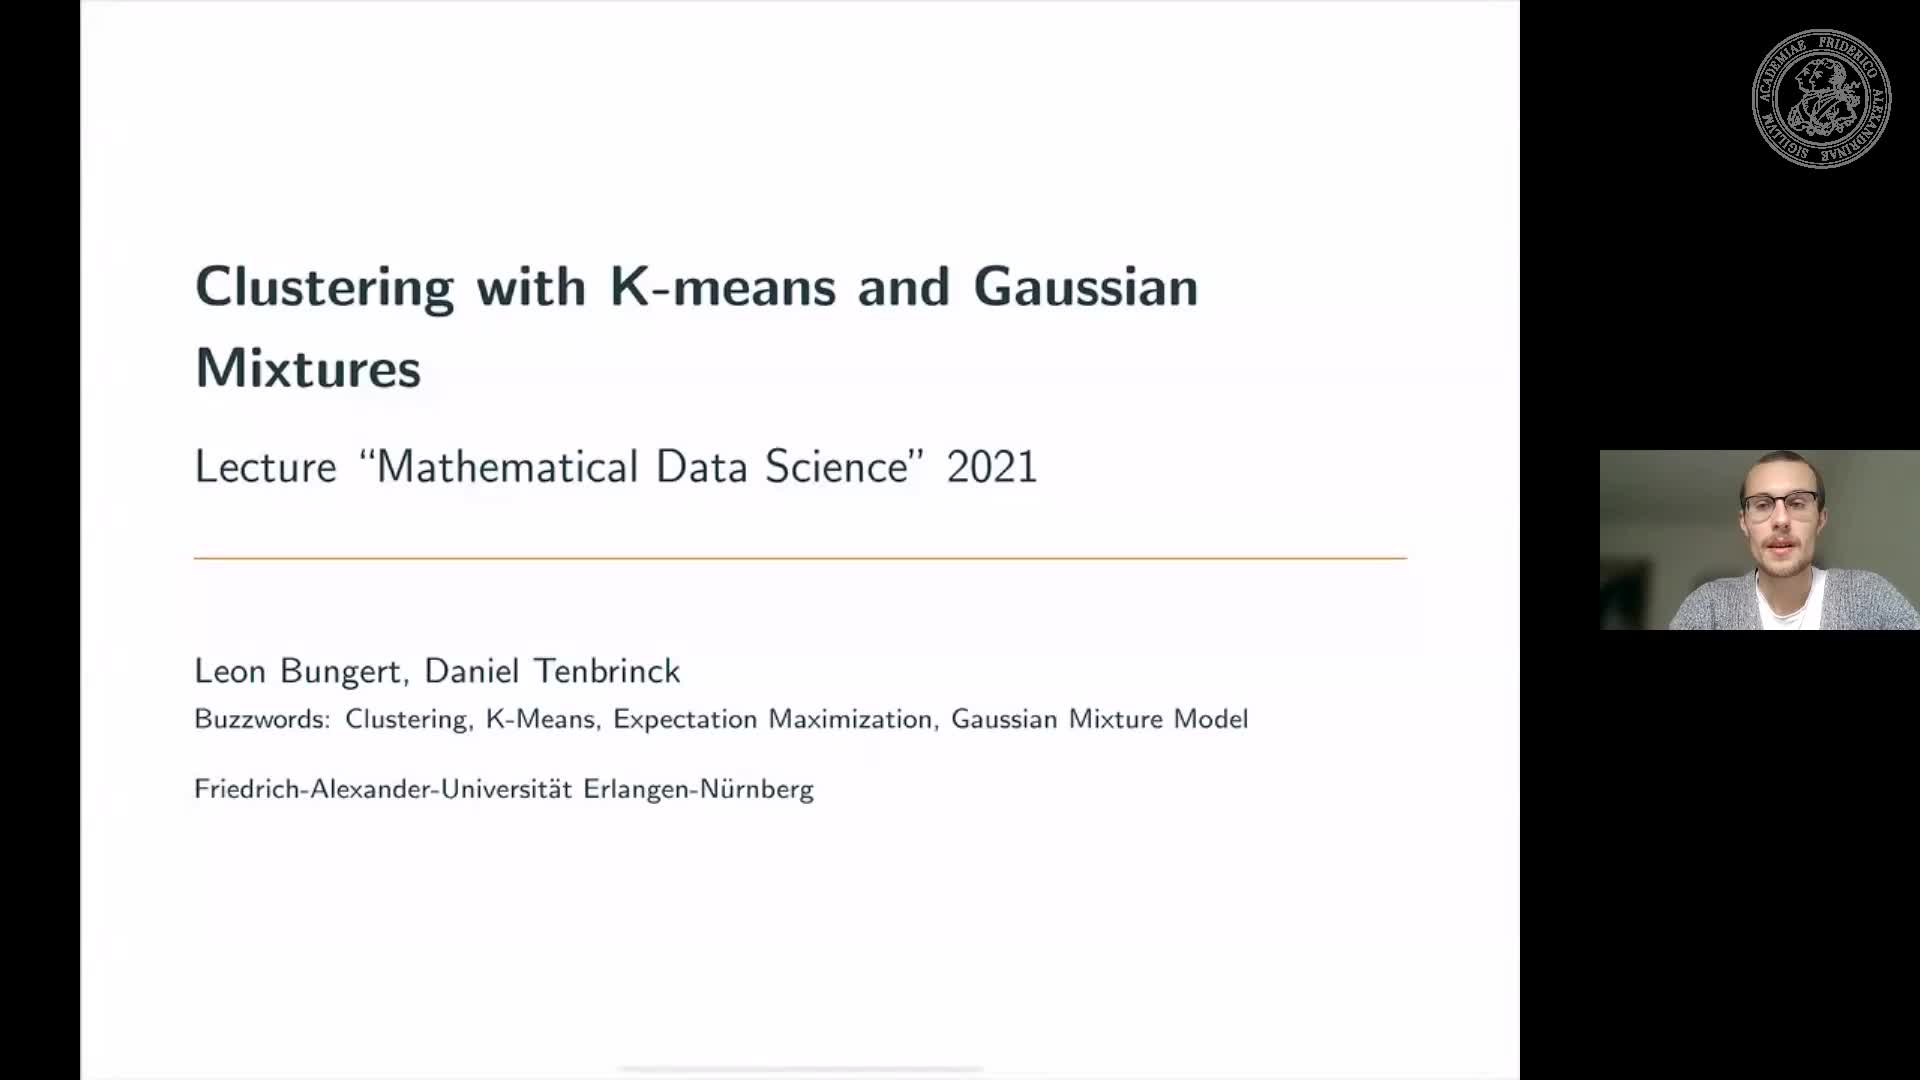 Clustering with K-means and Gaussian Mixtures preview image